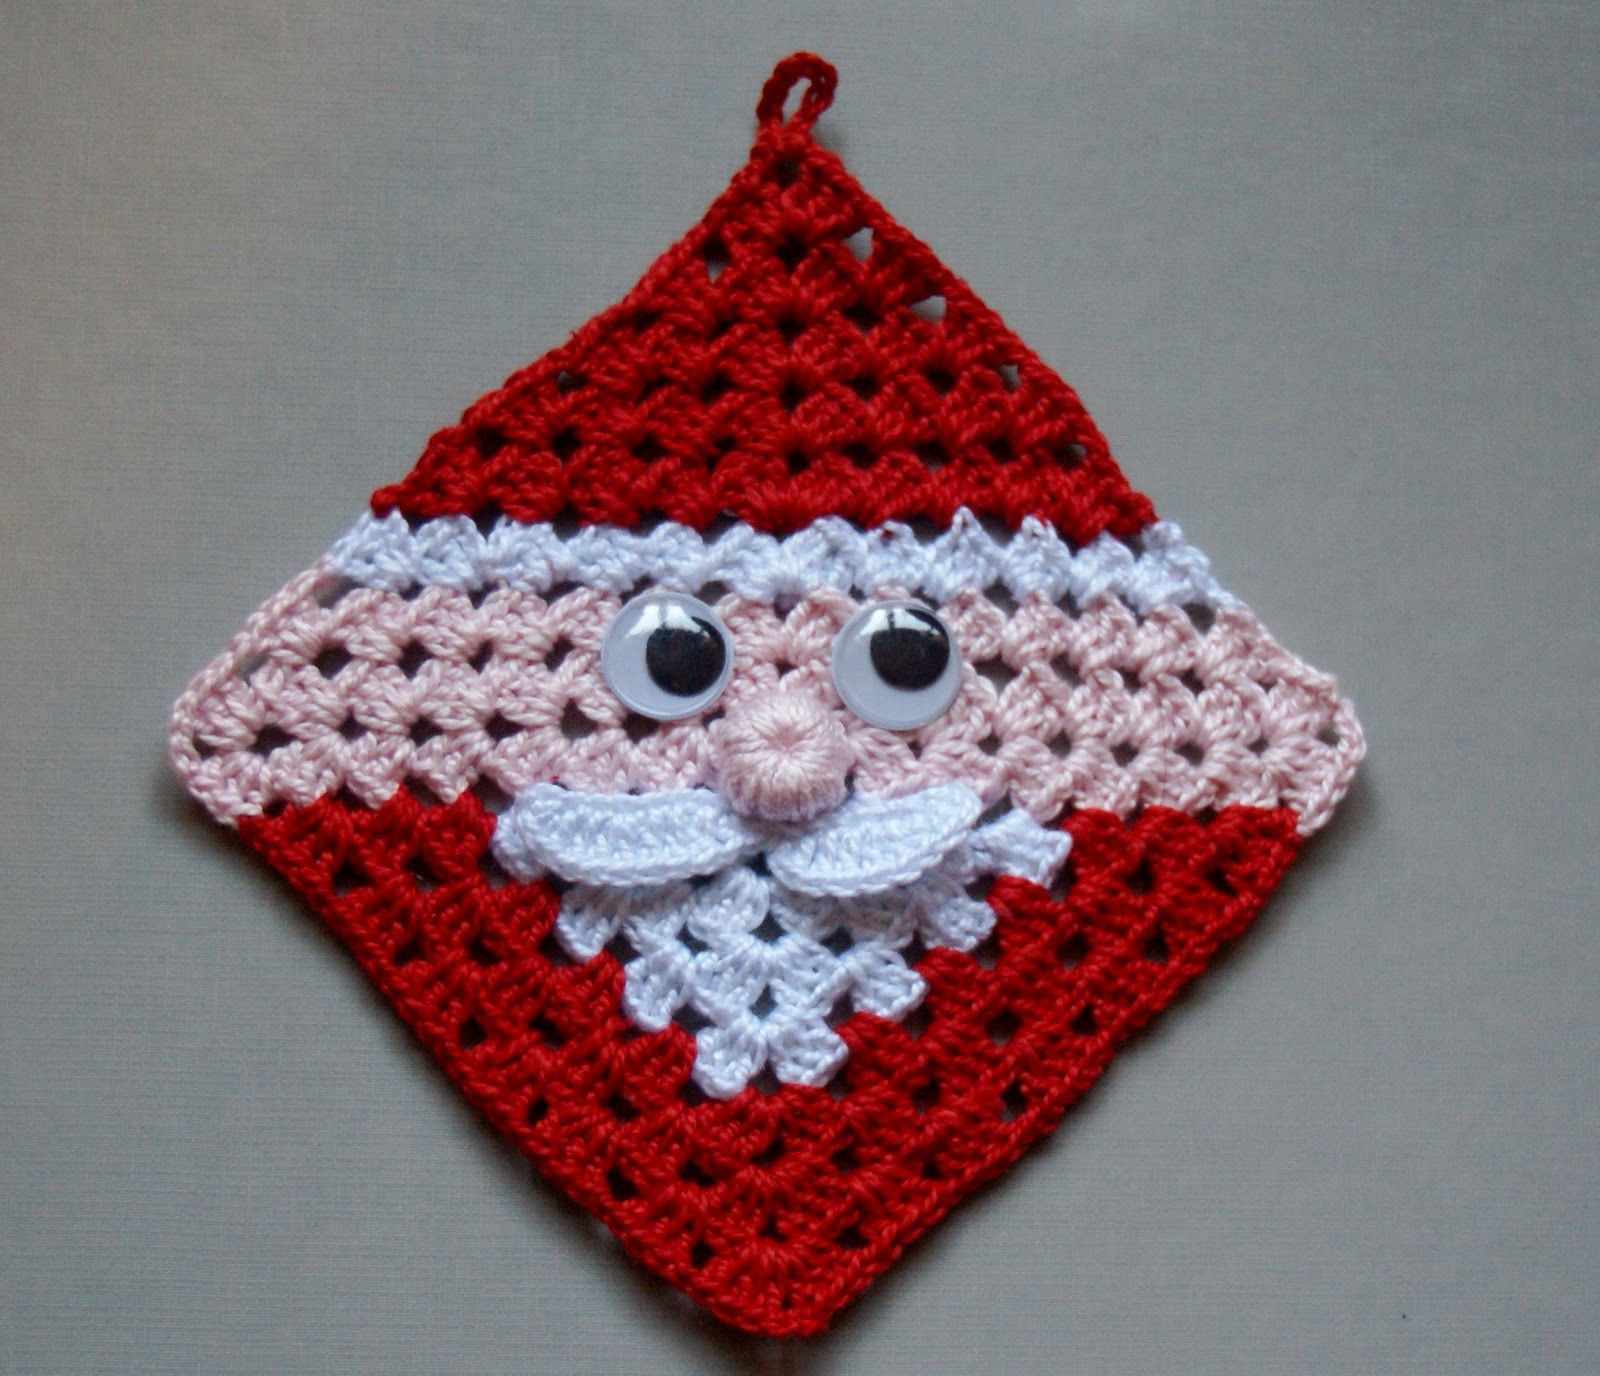 Free Crochet Santa Claus Granny Square Hot Pad Diagram Pattern Coaster Patterns Diagrams A Few Pretty Snowflakes So Cute